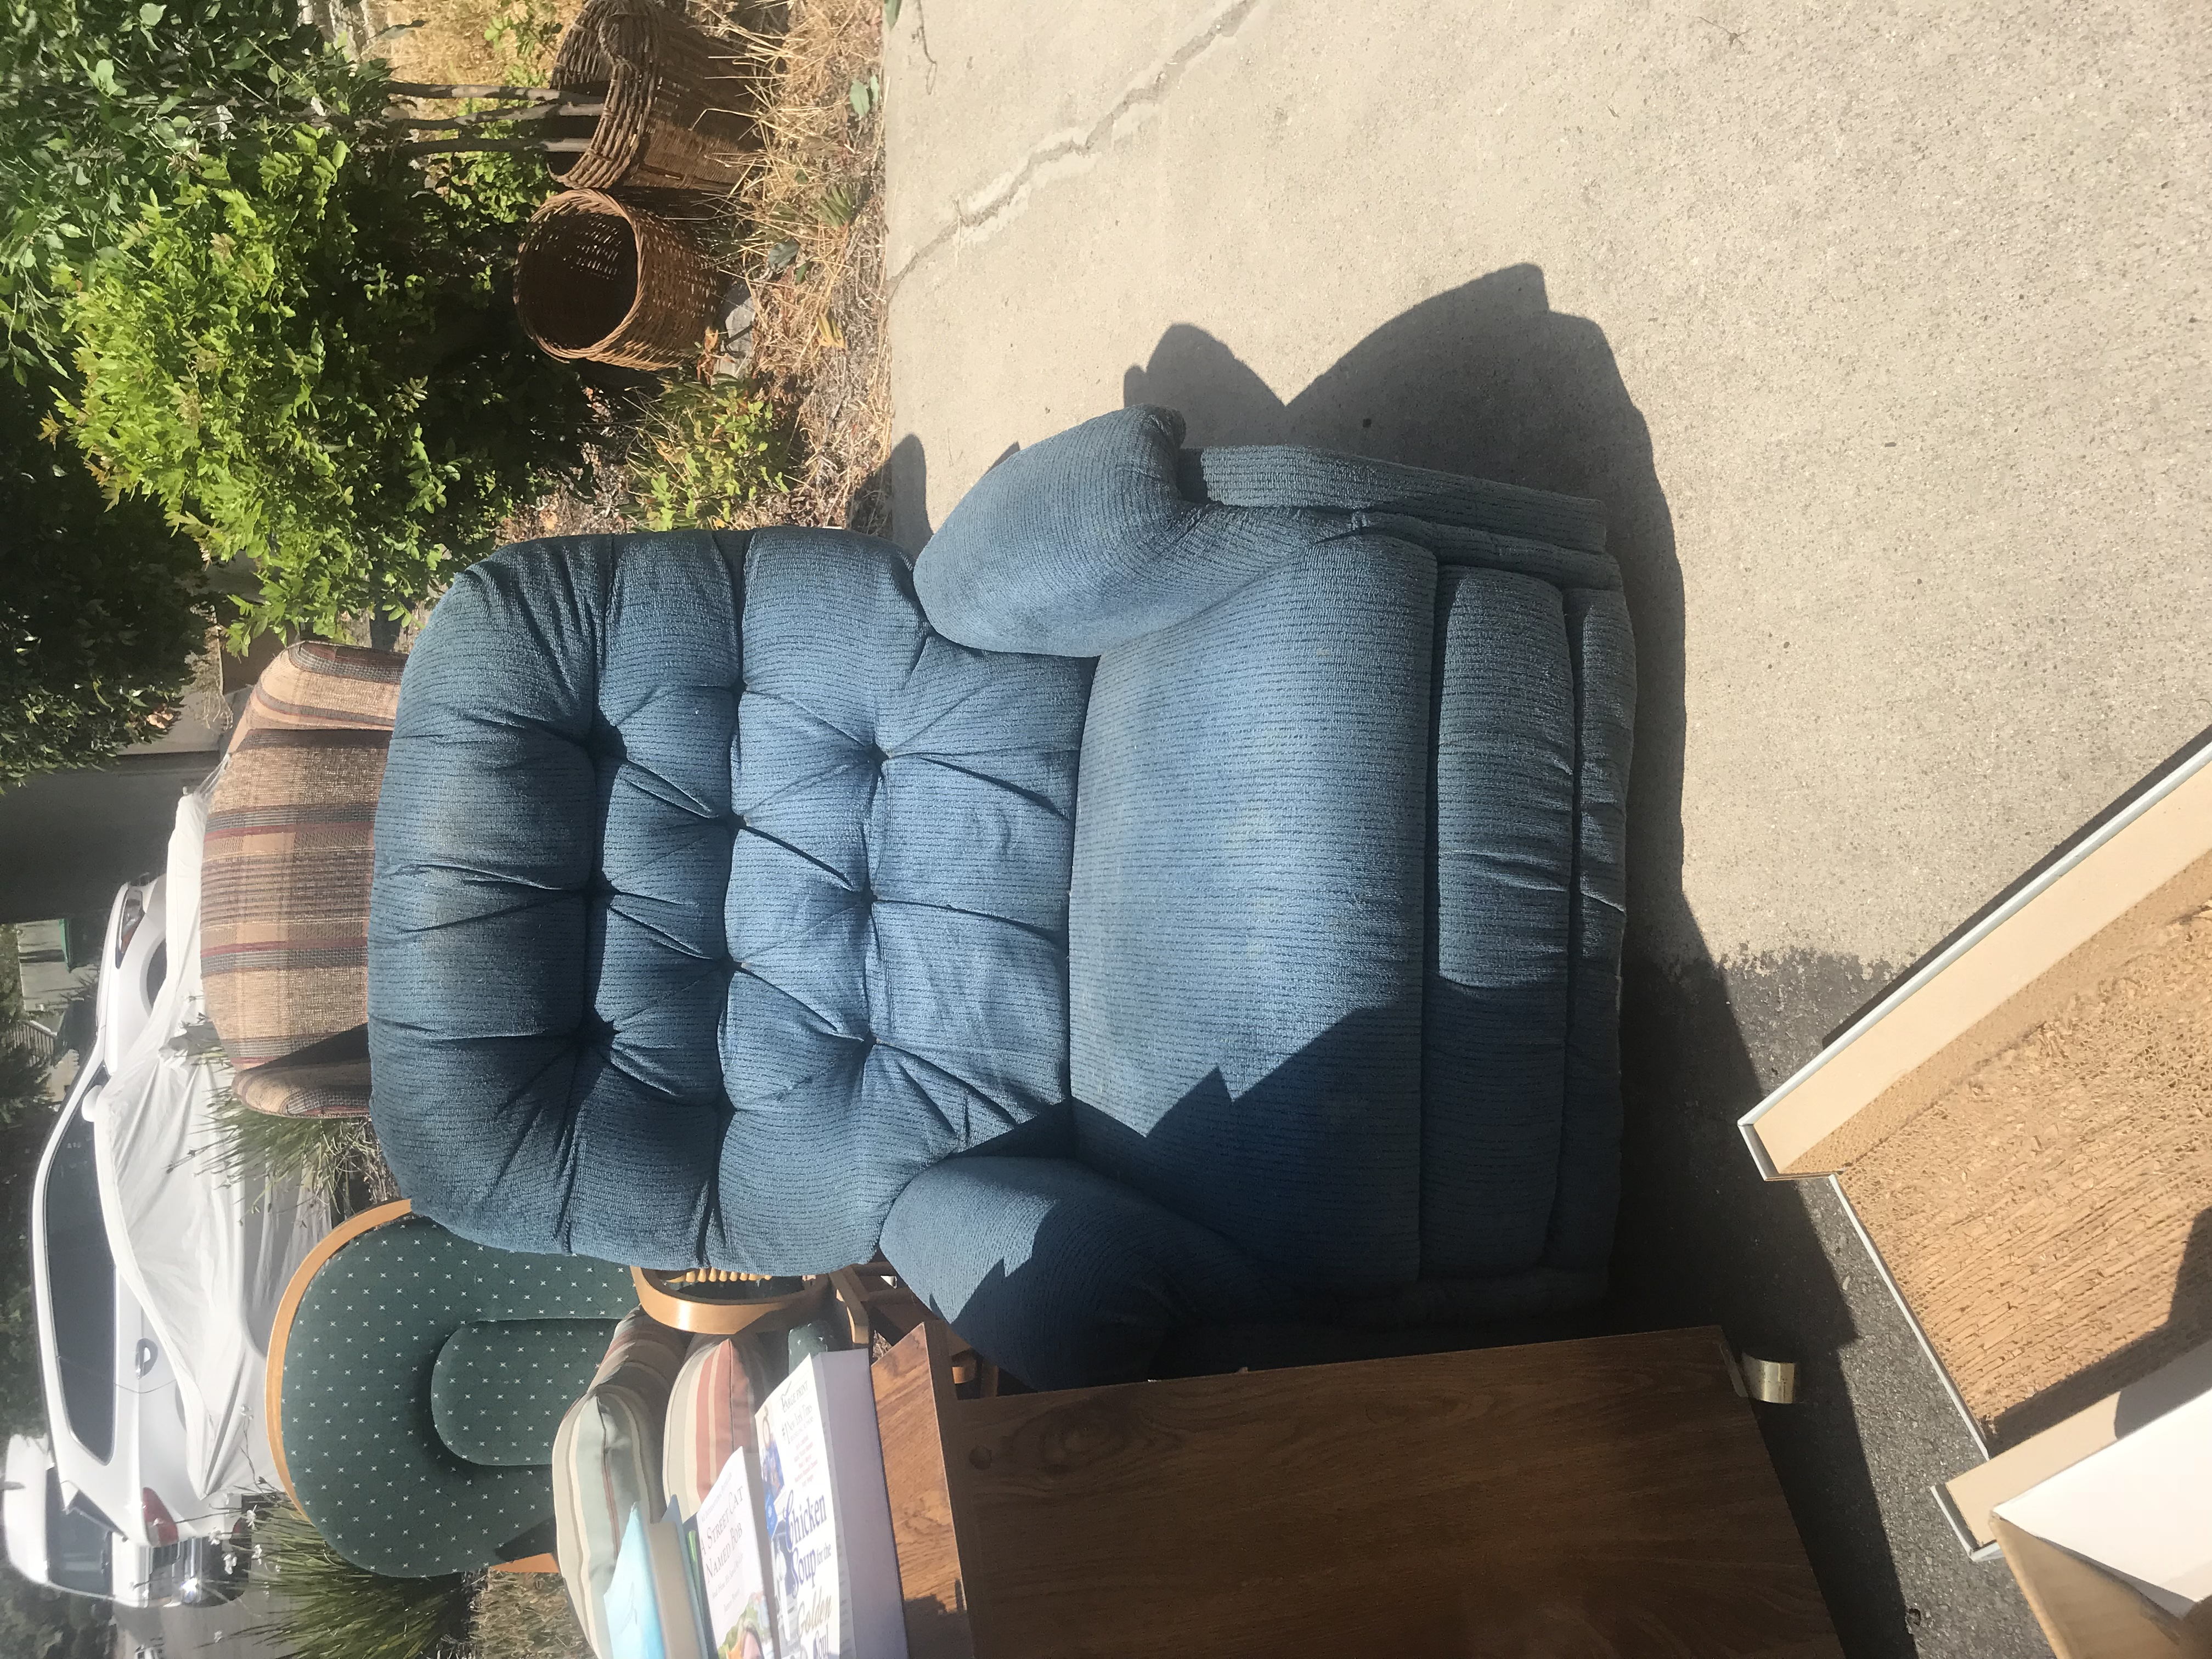 PennySaver | MOVING FREE STUFF EVERYTHING MUST GO!!! in San